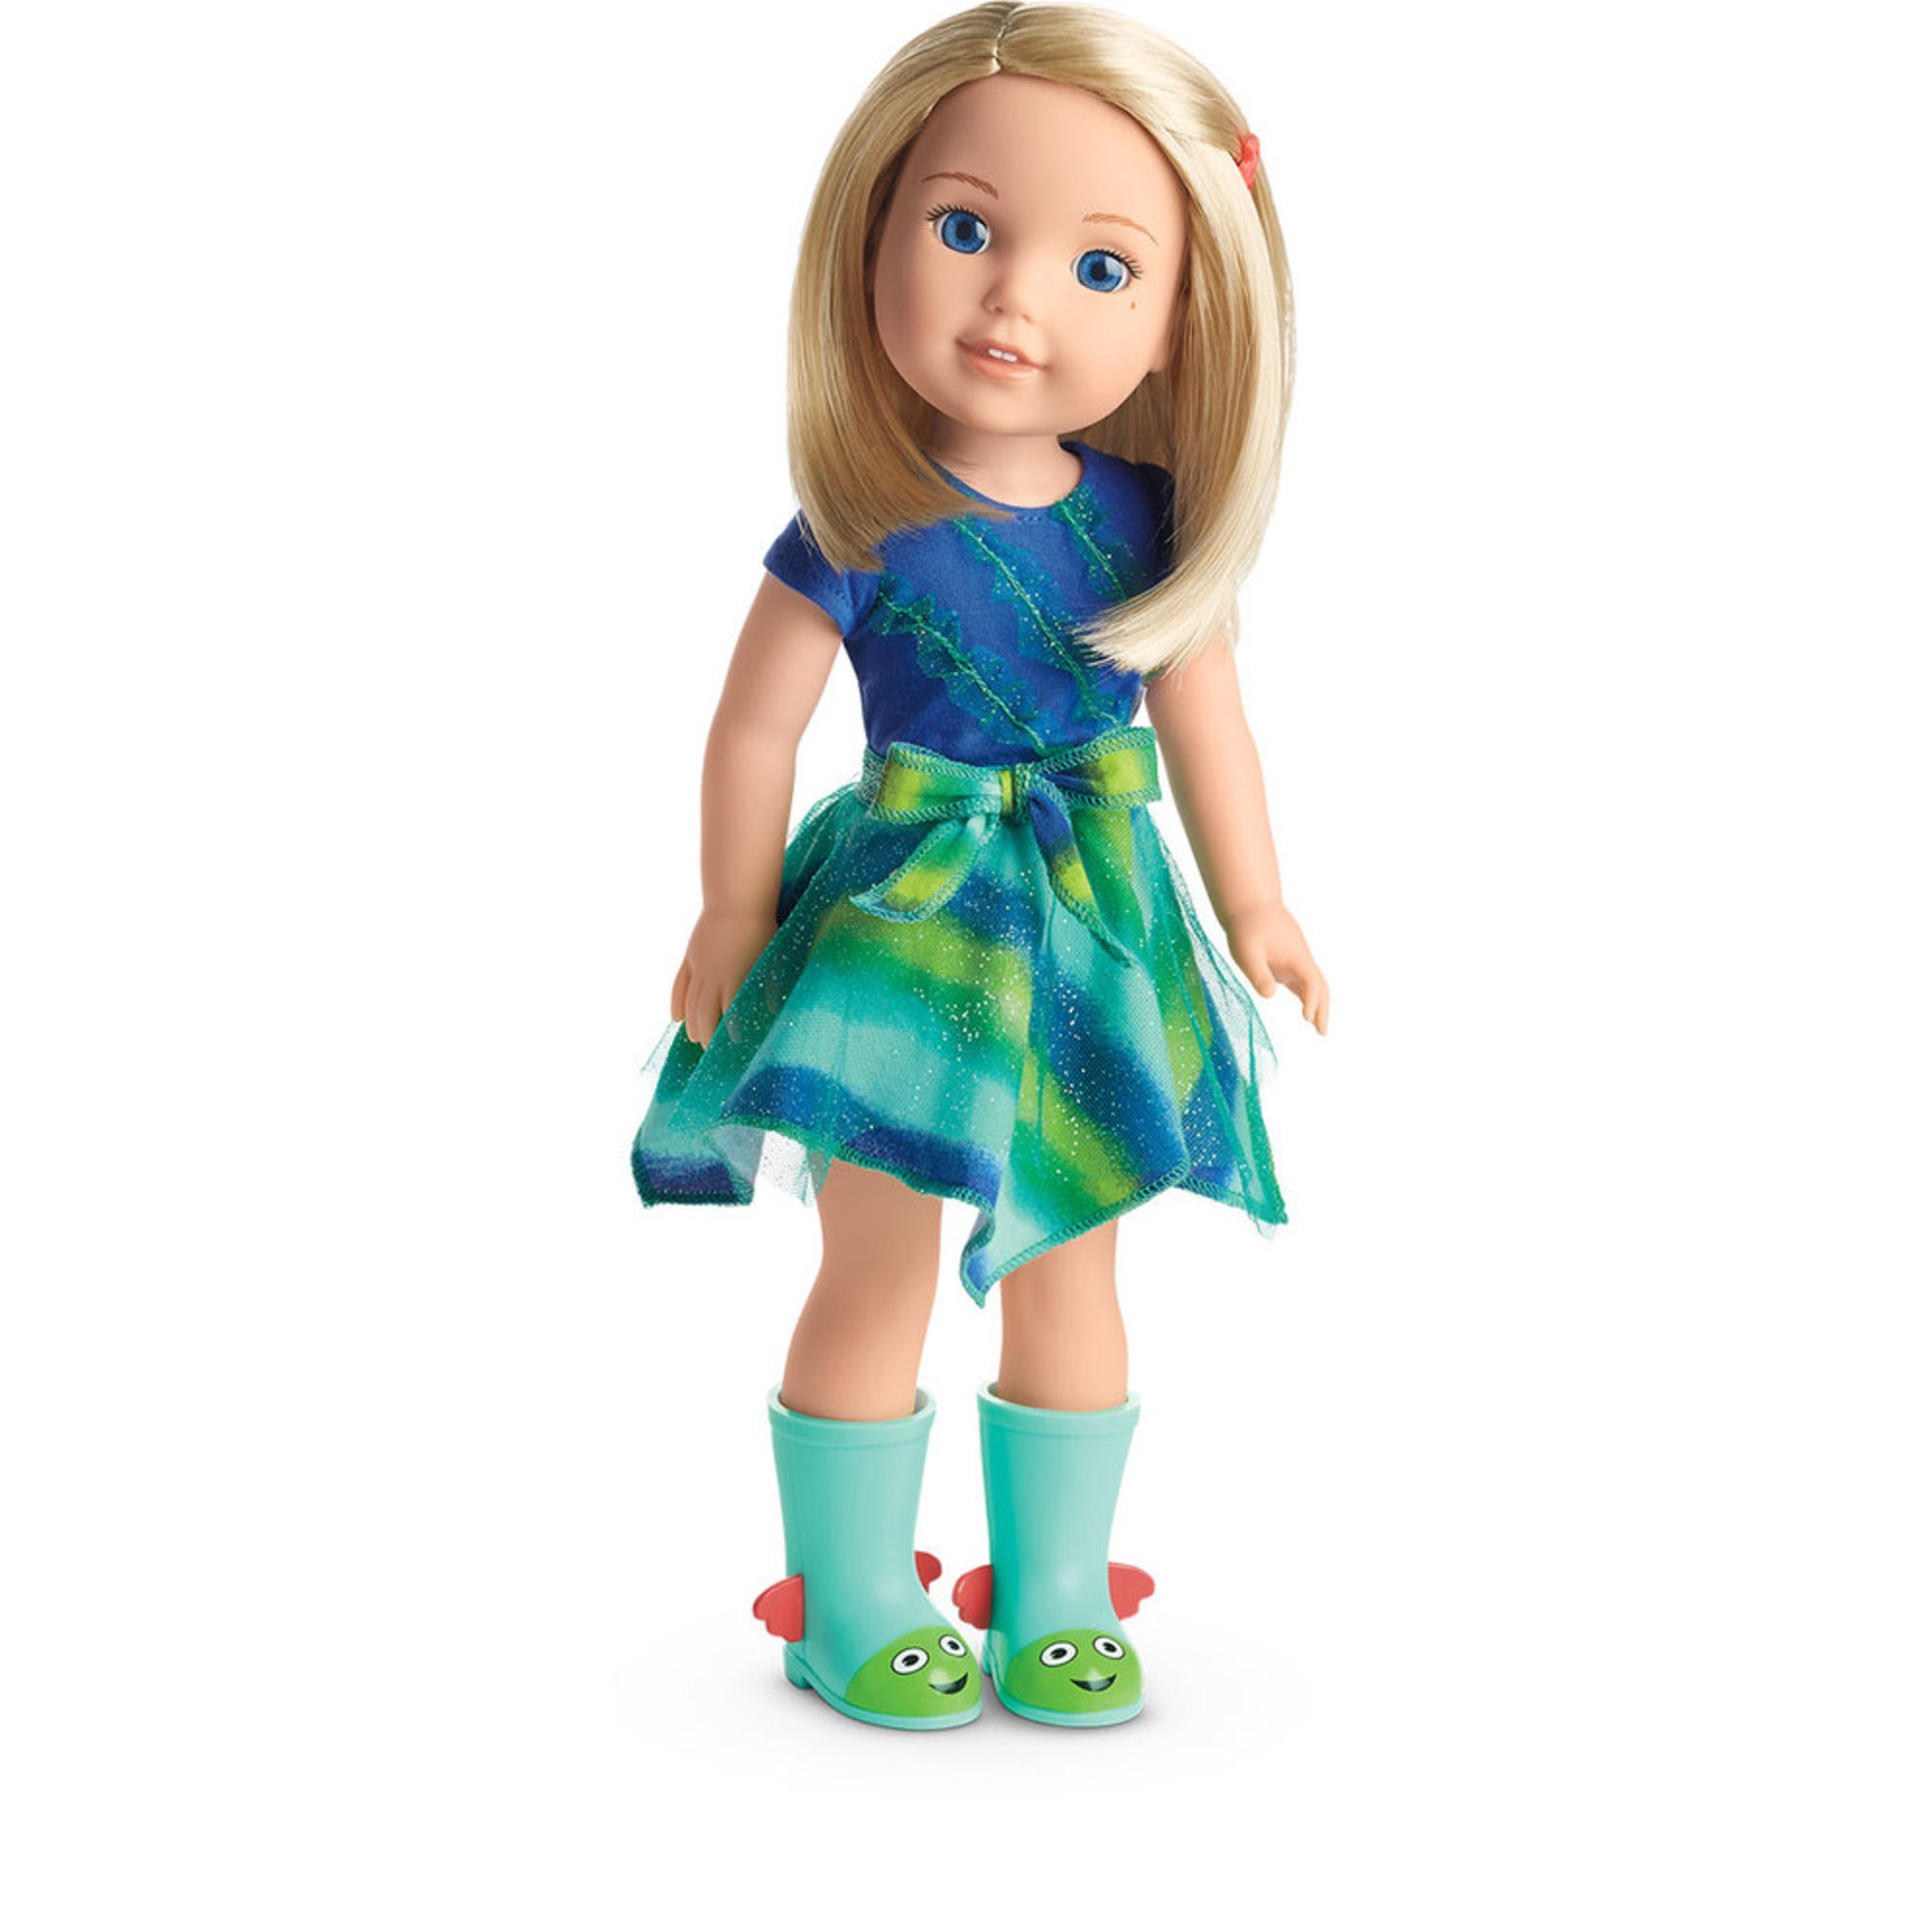 Welliewishers Camille Doll | Dolls | Baby, Kids & Toys ...